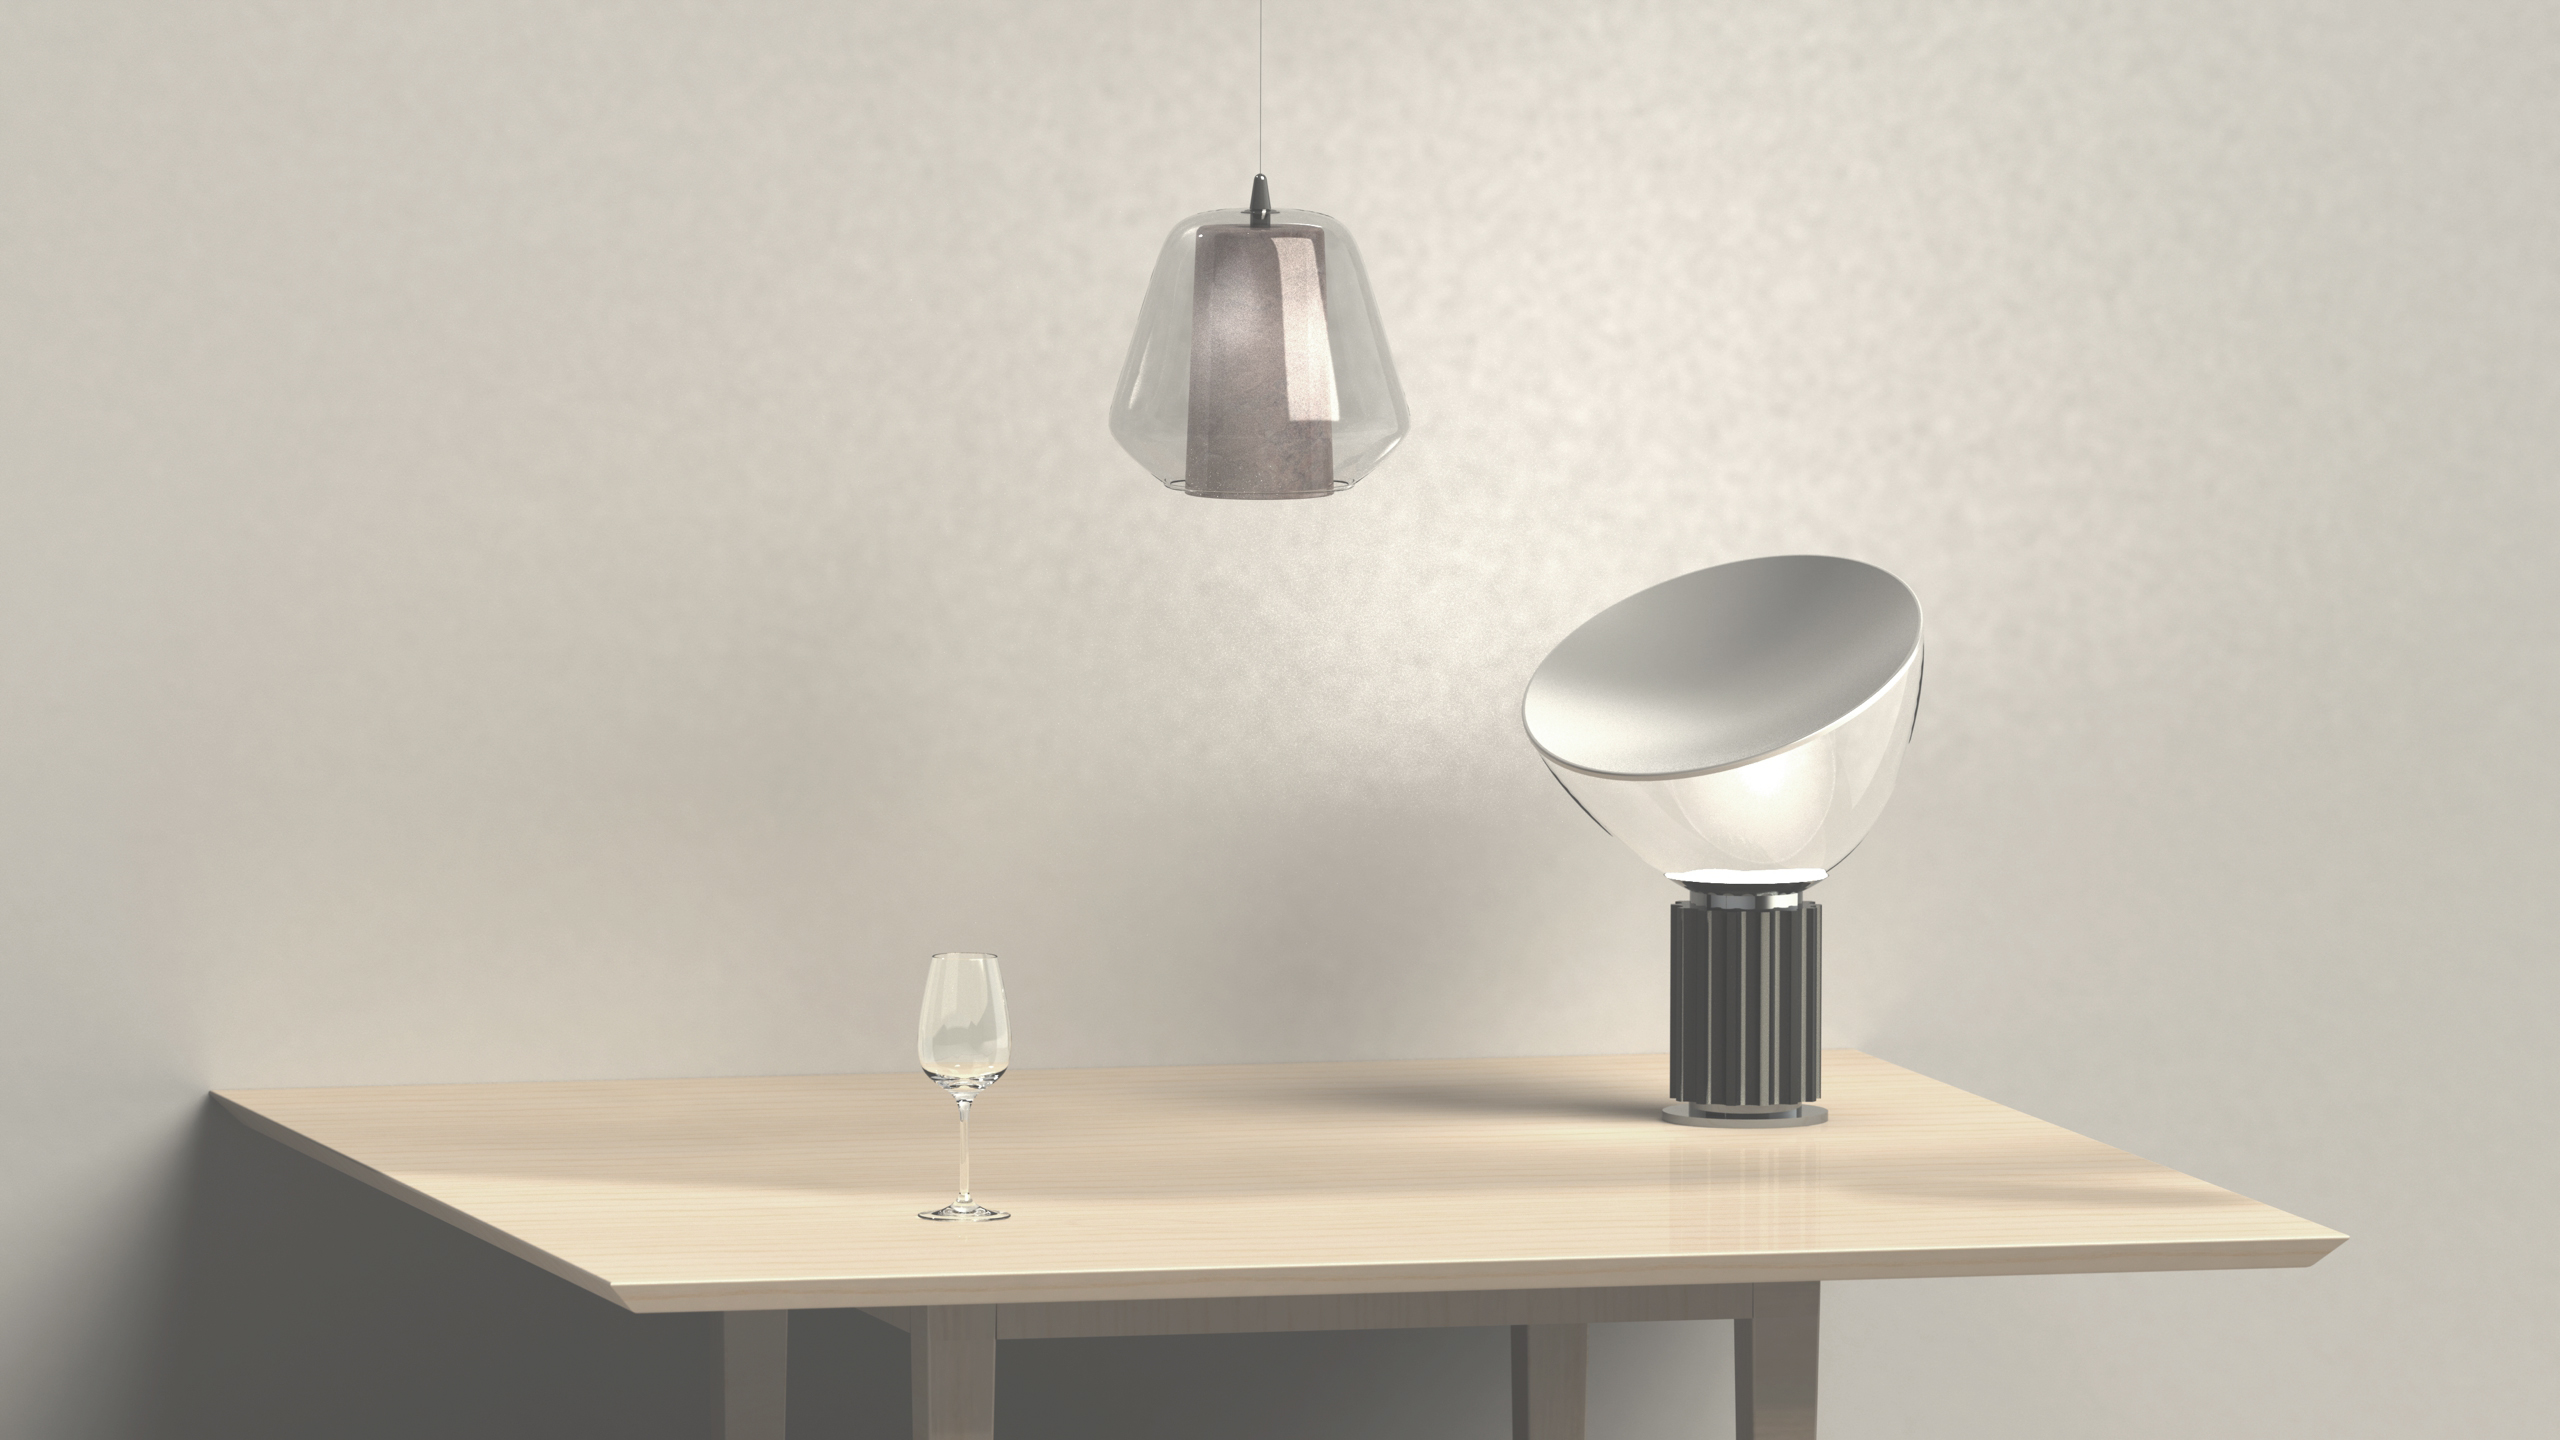 Solidworks render with Taccia from Flos, by Sebastian Galo